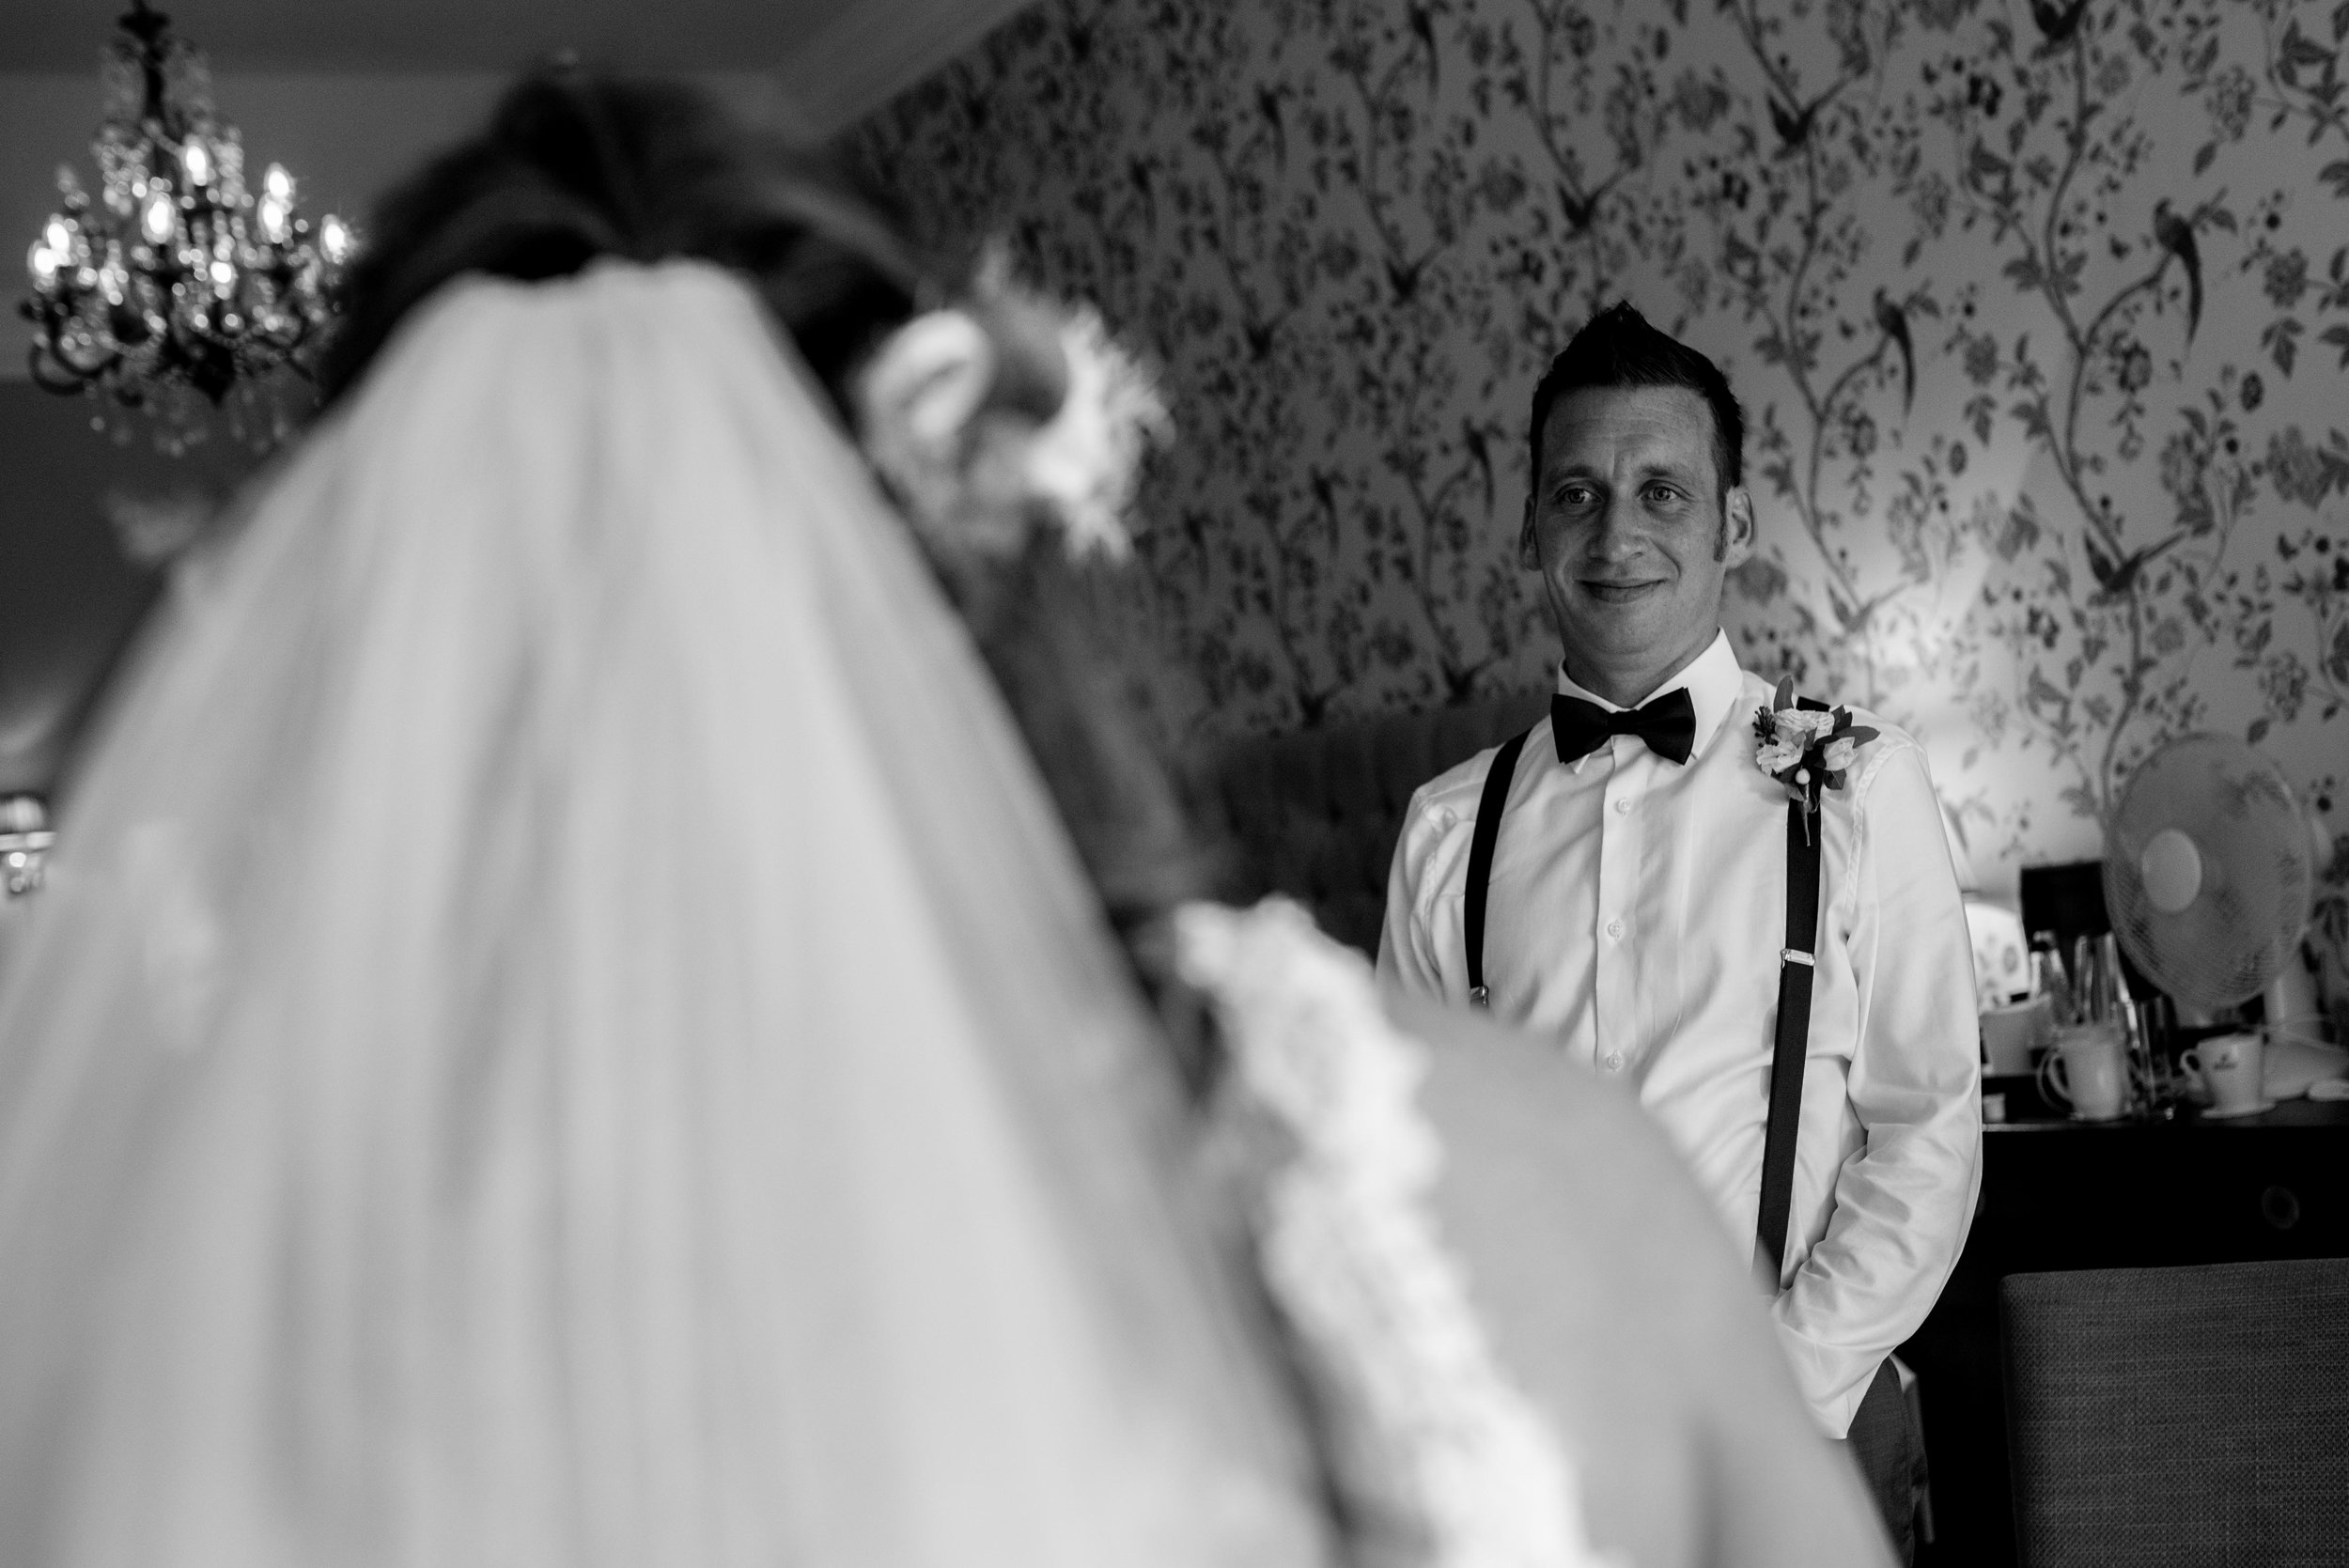 The brother of the bride sees his sister in a dress for the first time